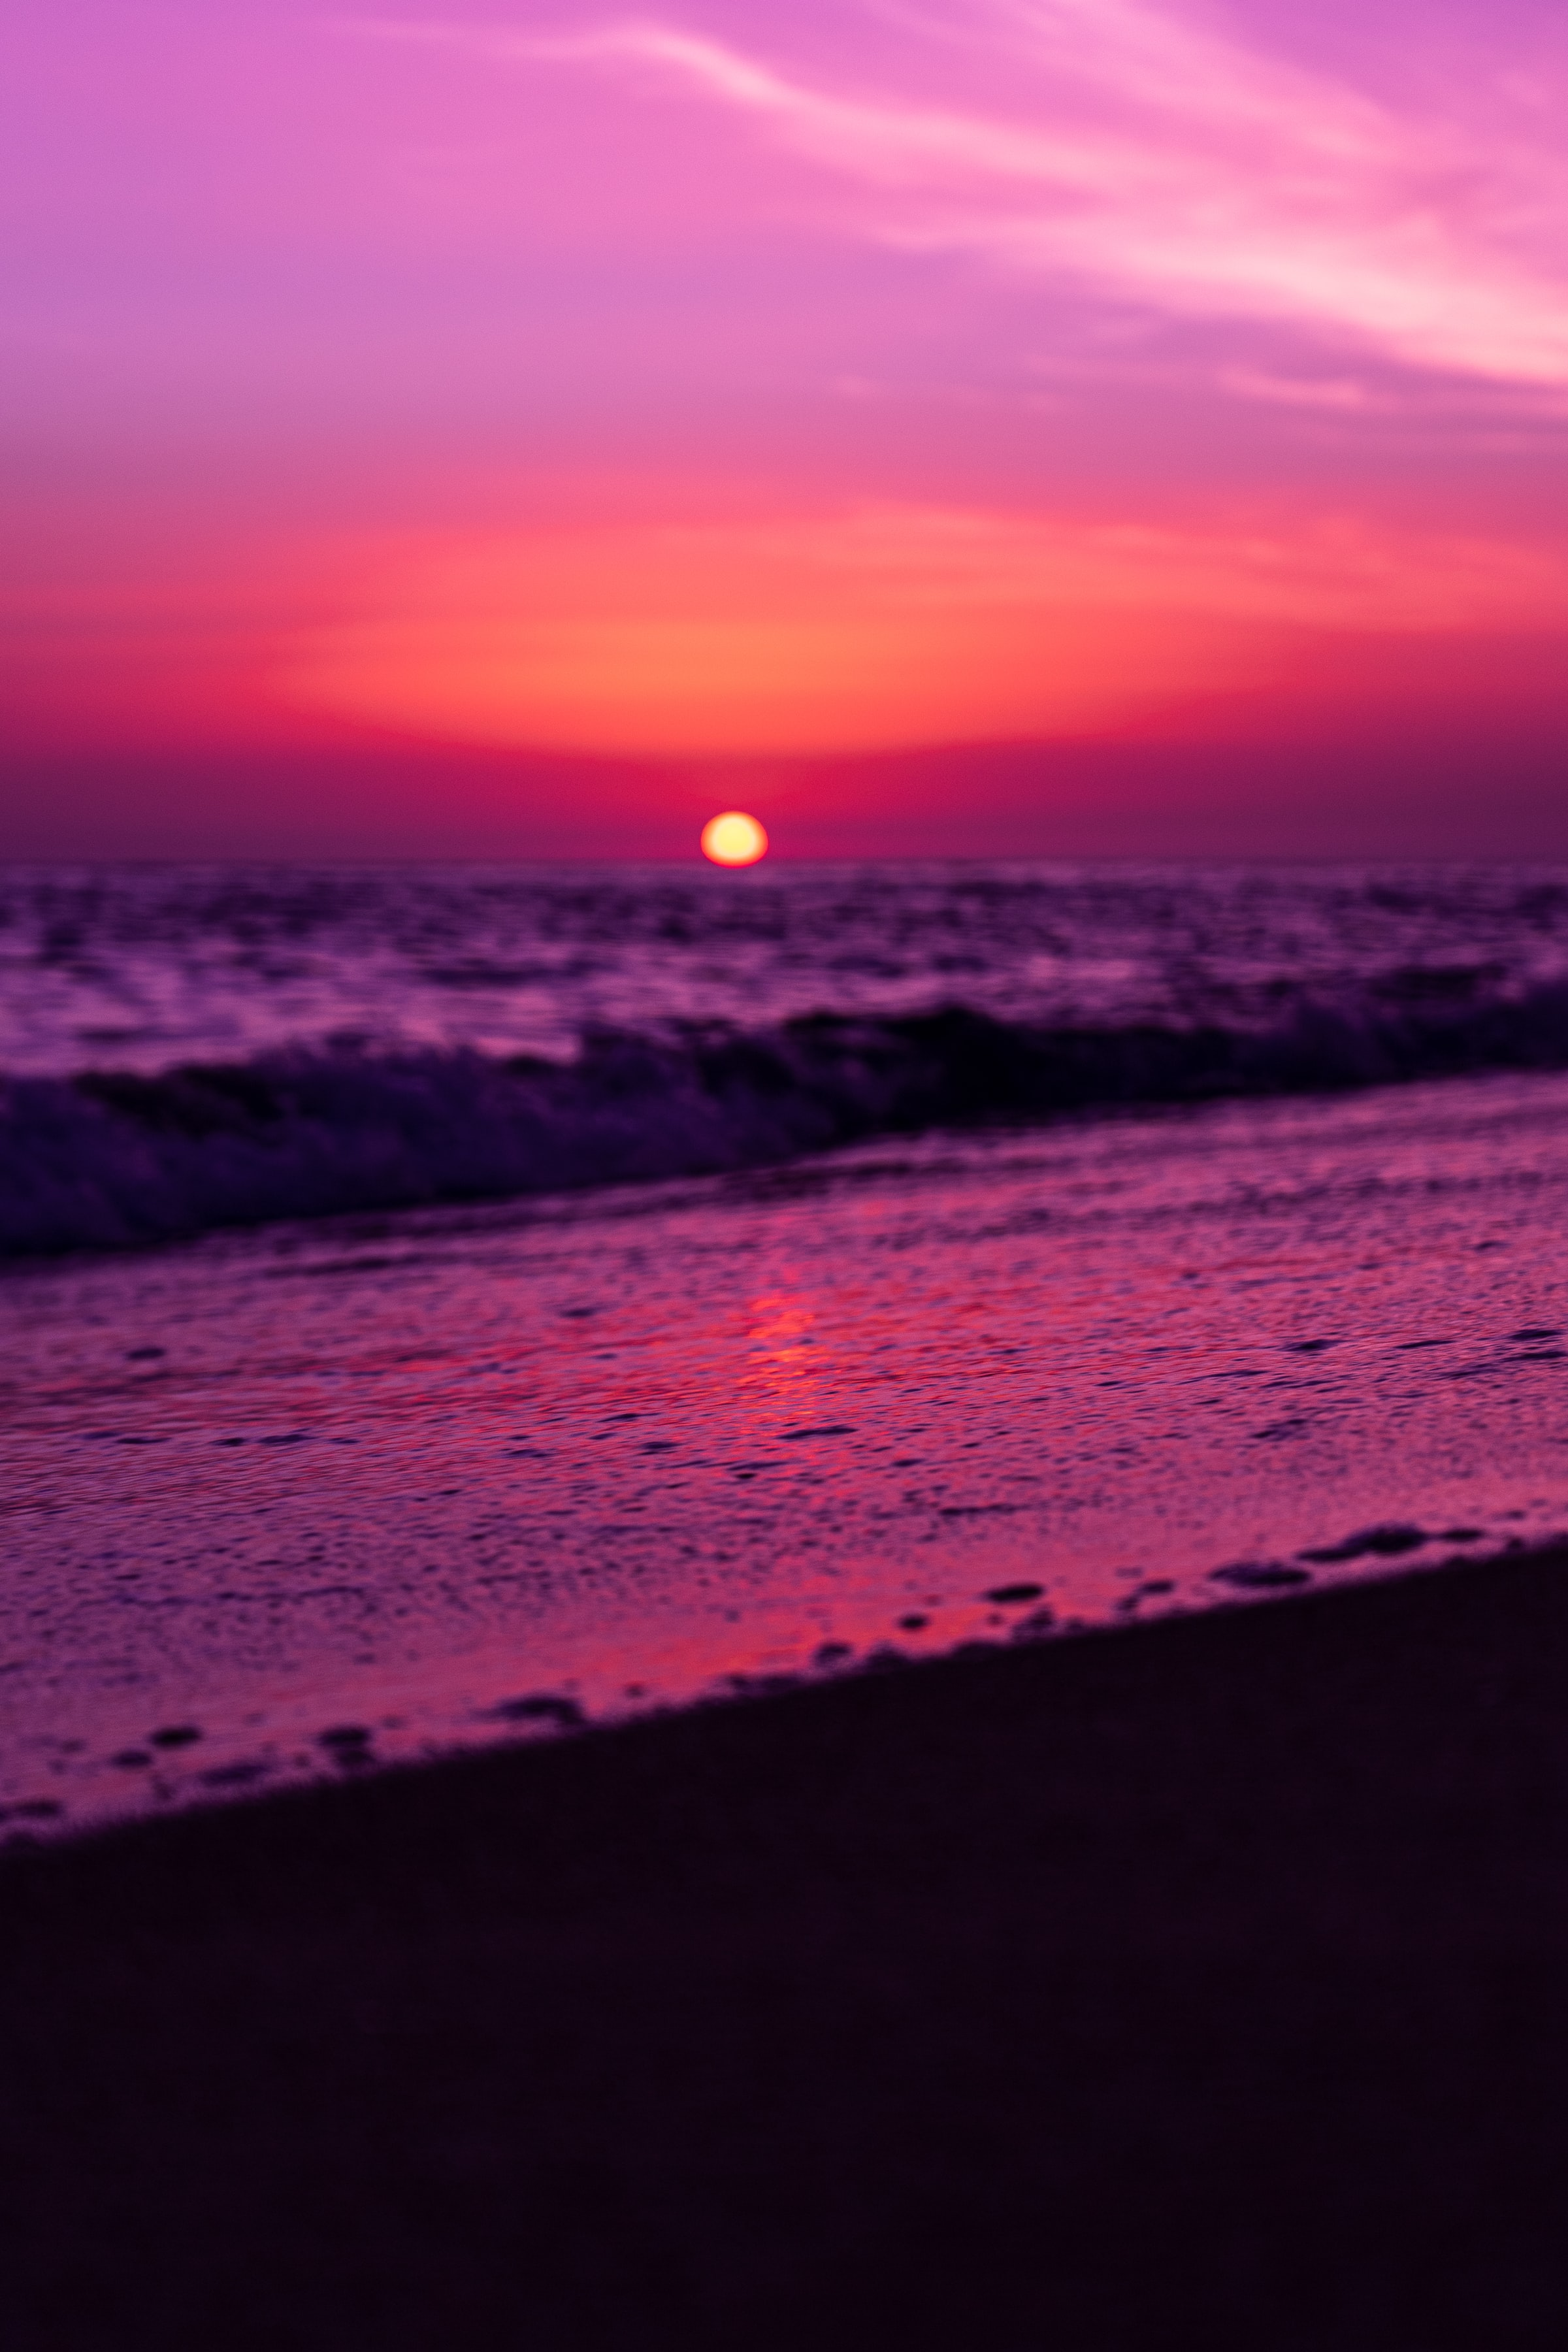 124962 download wallpaper Nature, Horizon, Sunset, Purple, Violet, Sun screensavers and pictures for free